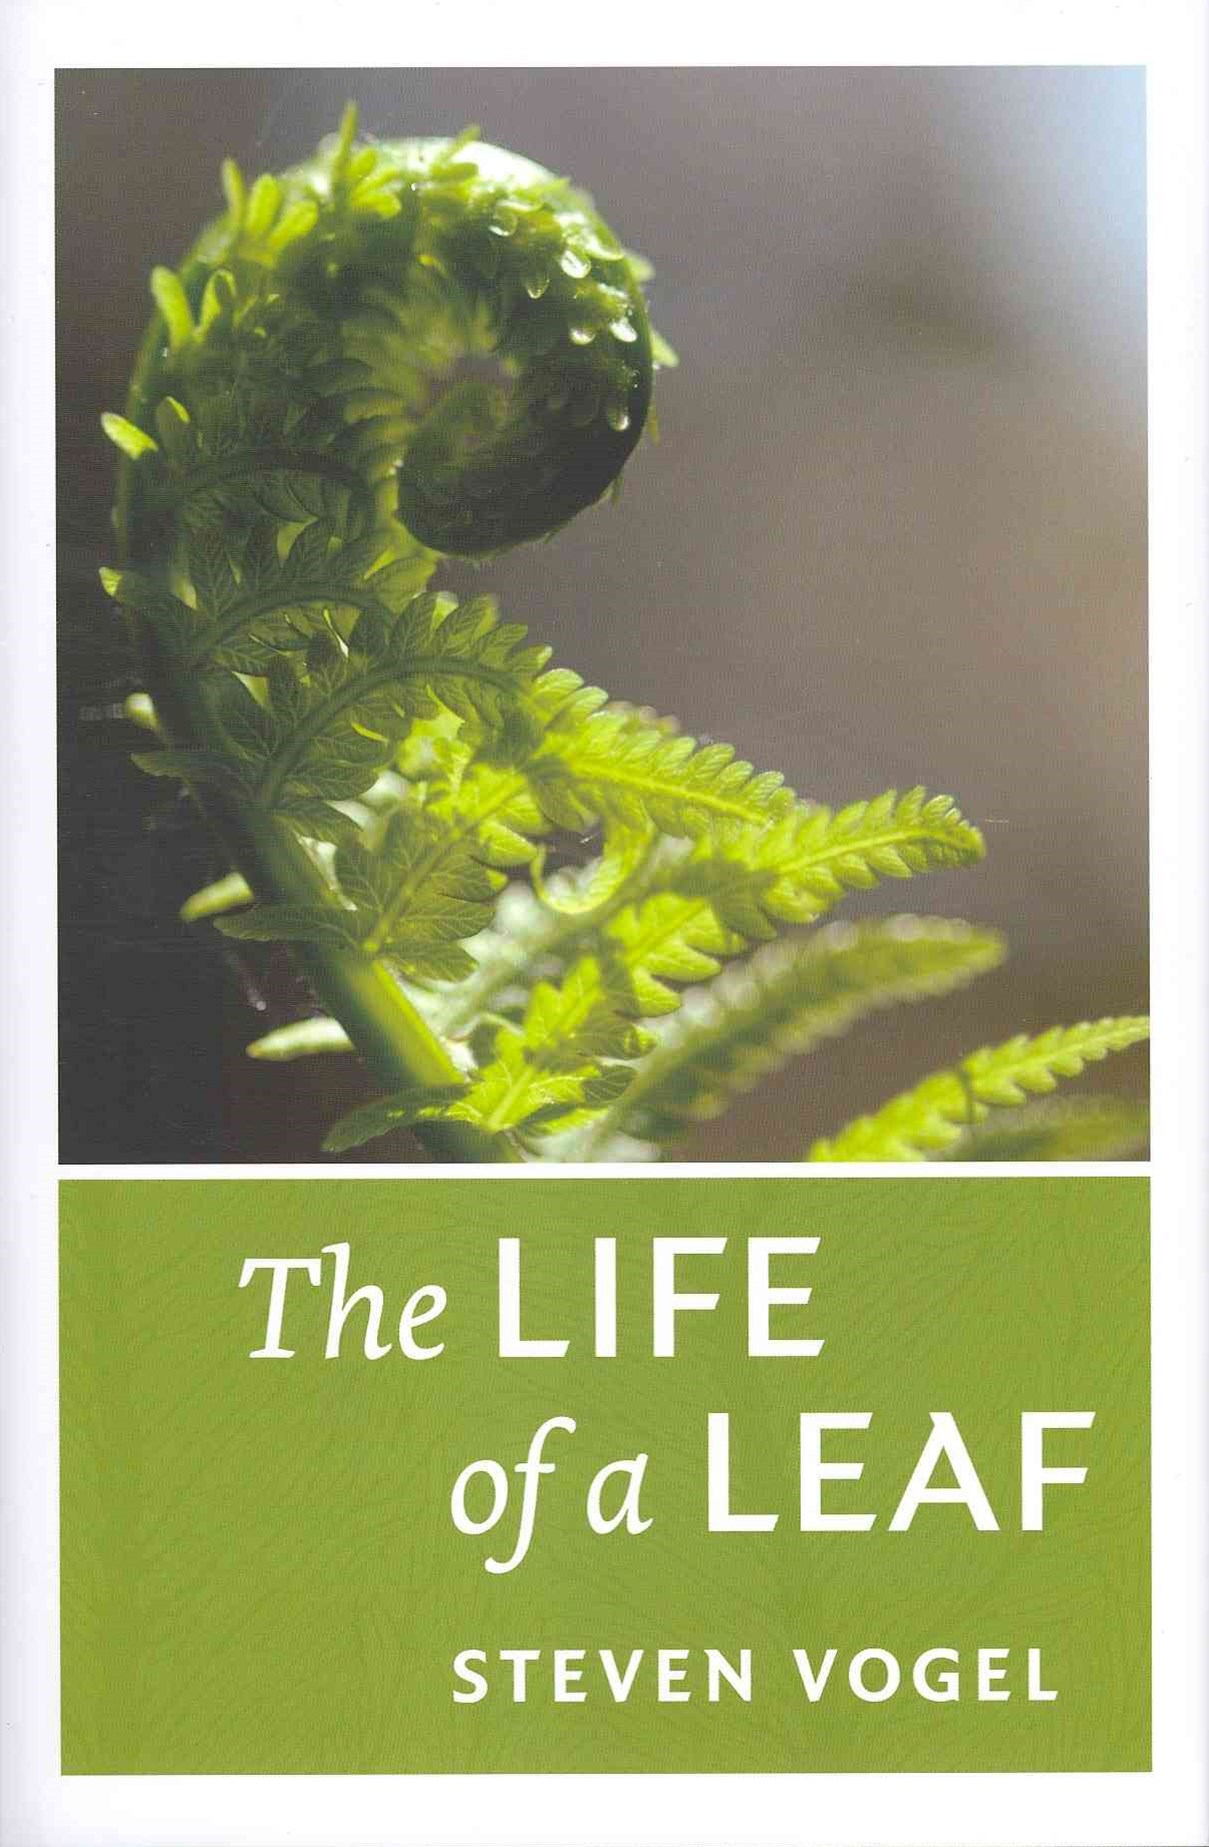 The Life of a Leaf